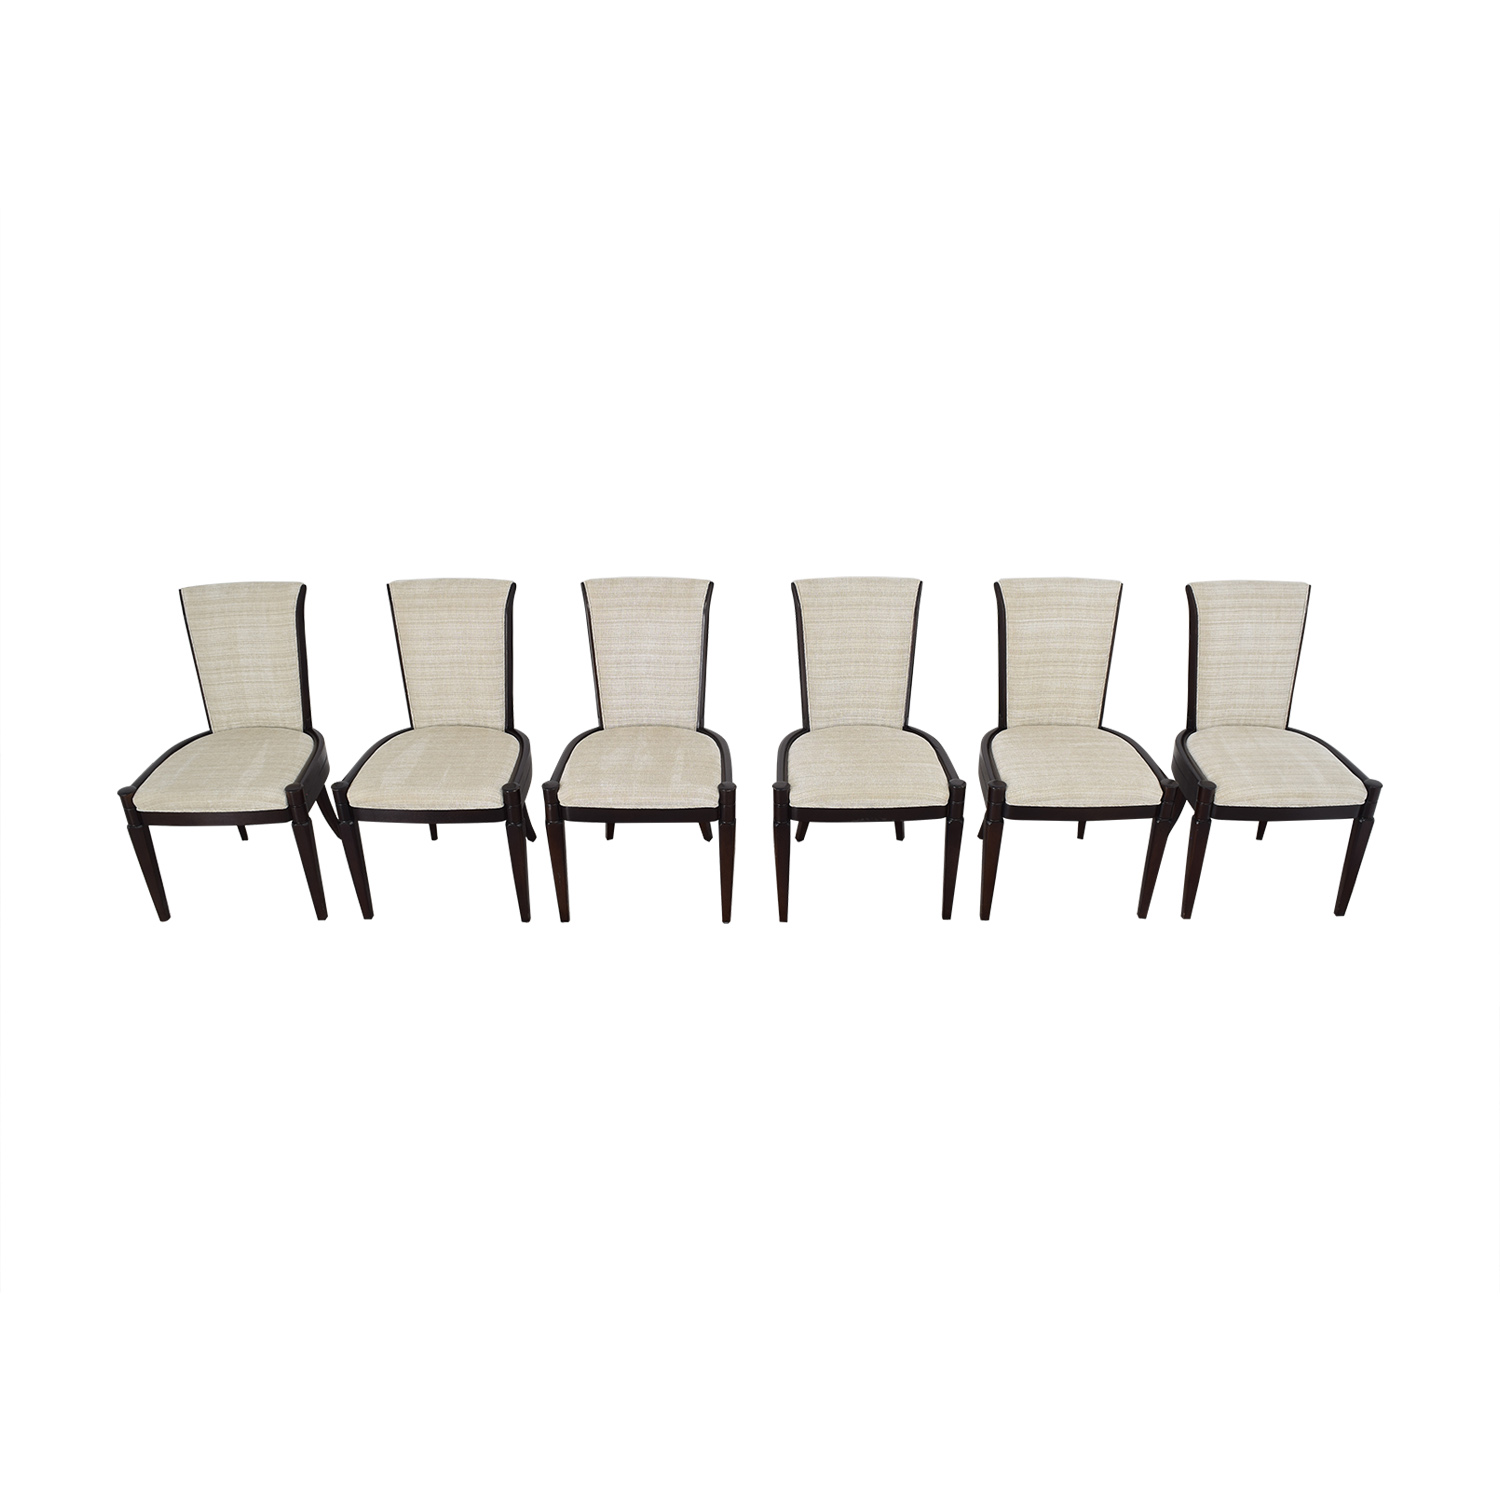 Century Furniture Century Furniture Upholstered Dining Chairs Chairs